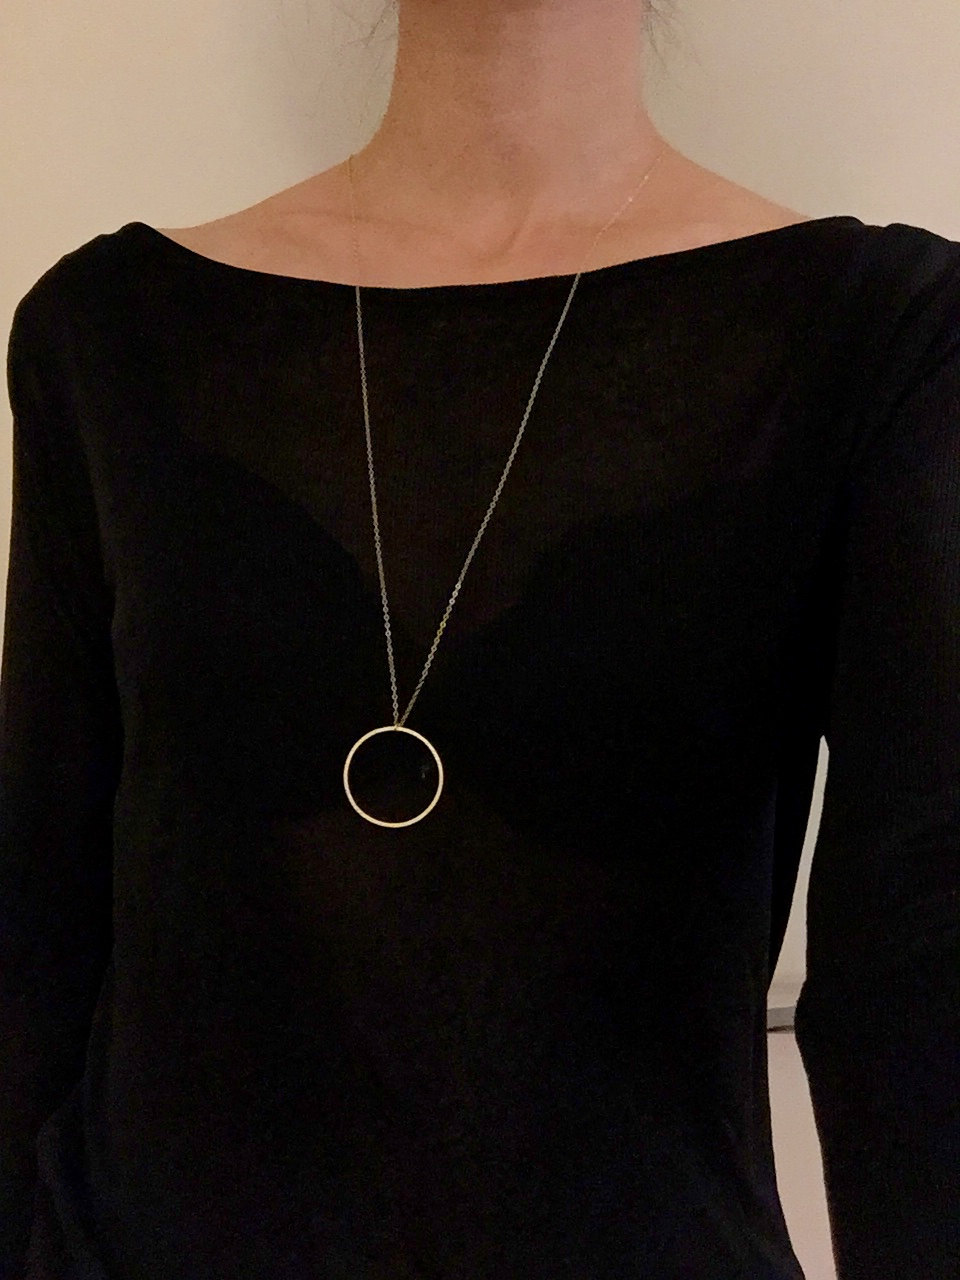 Statement necklace Circle pendant necklace Long necklace jewelry XL153 3